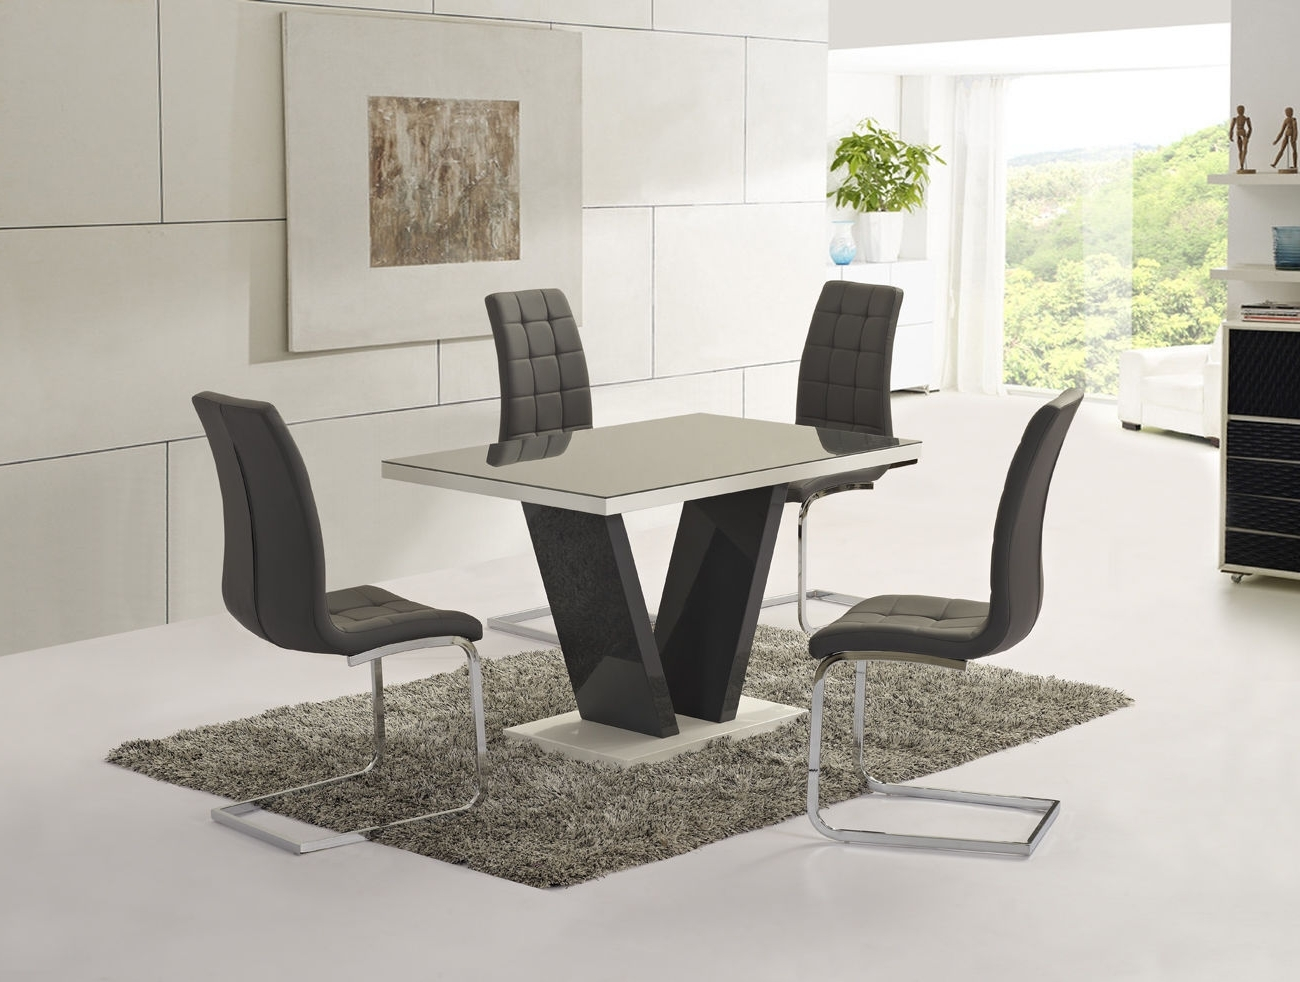 Ga Vico Gloss Grey Glass Top Designer 160Cm Dining Set – 4 6 Grey With Regard To Favorite Black Glass Dining Tables With 6 Chairs (Gallery 14 of 25)